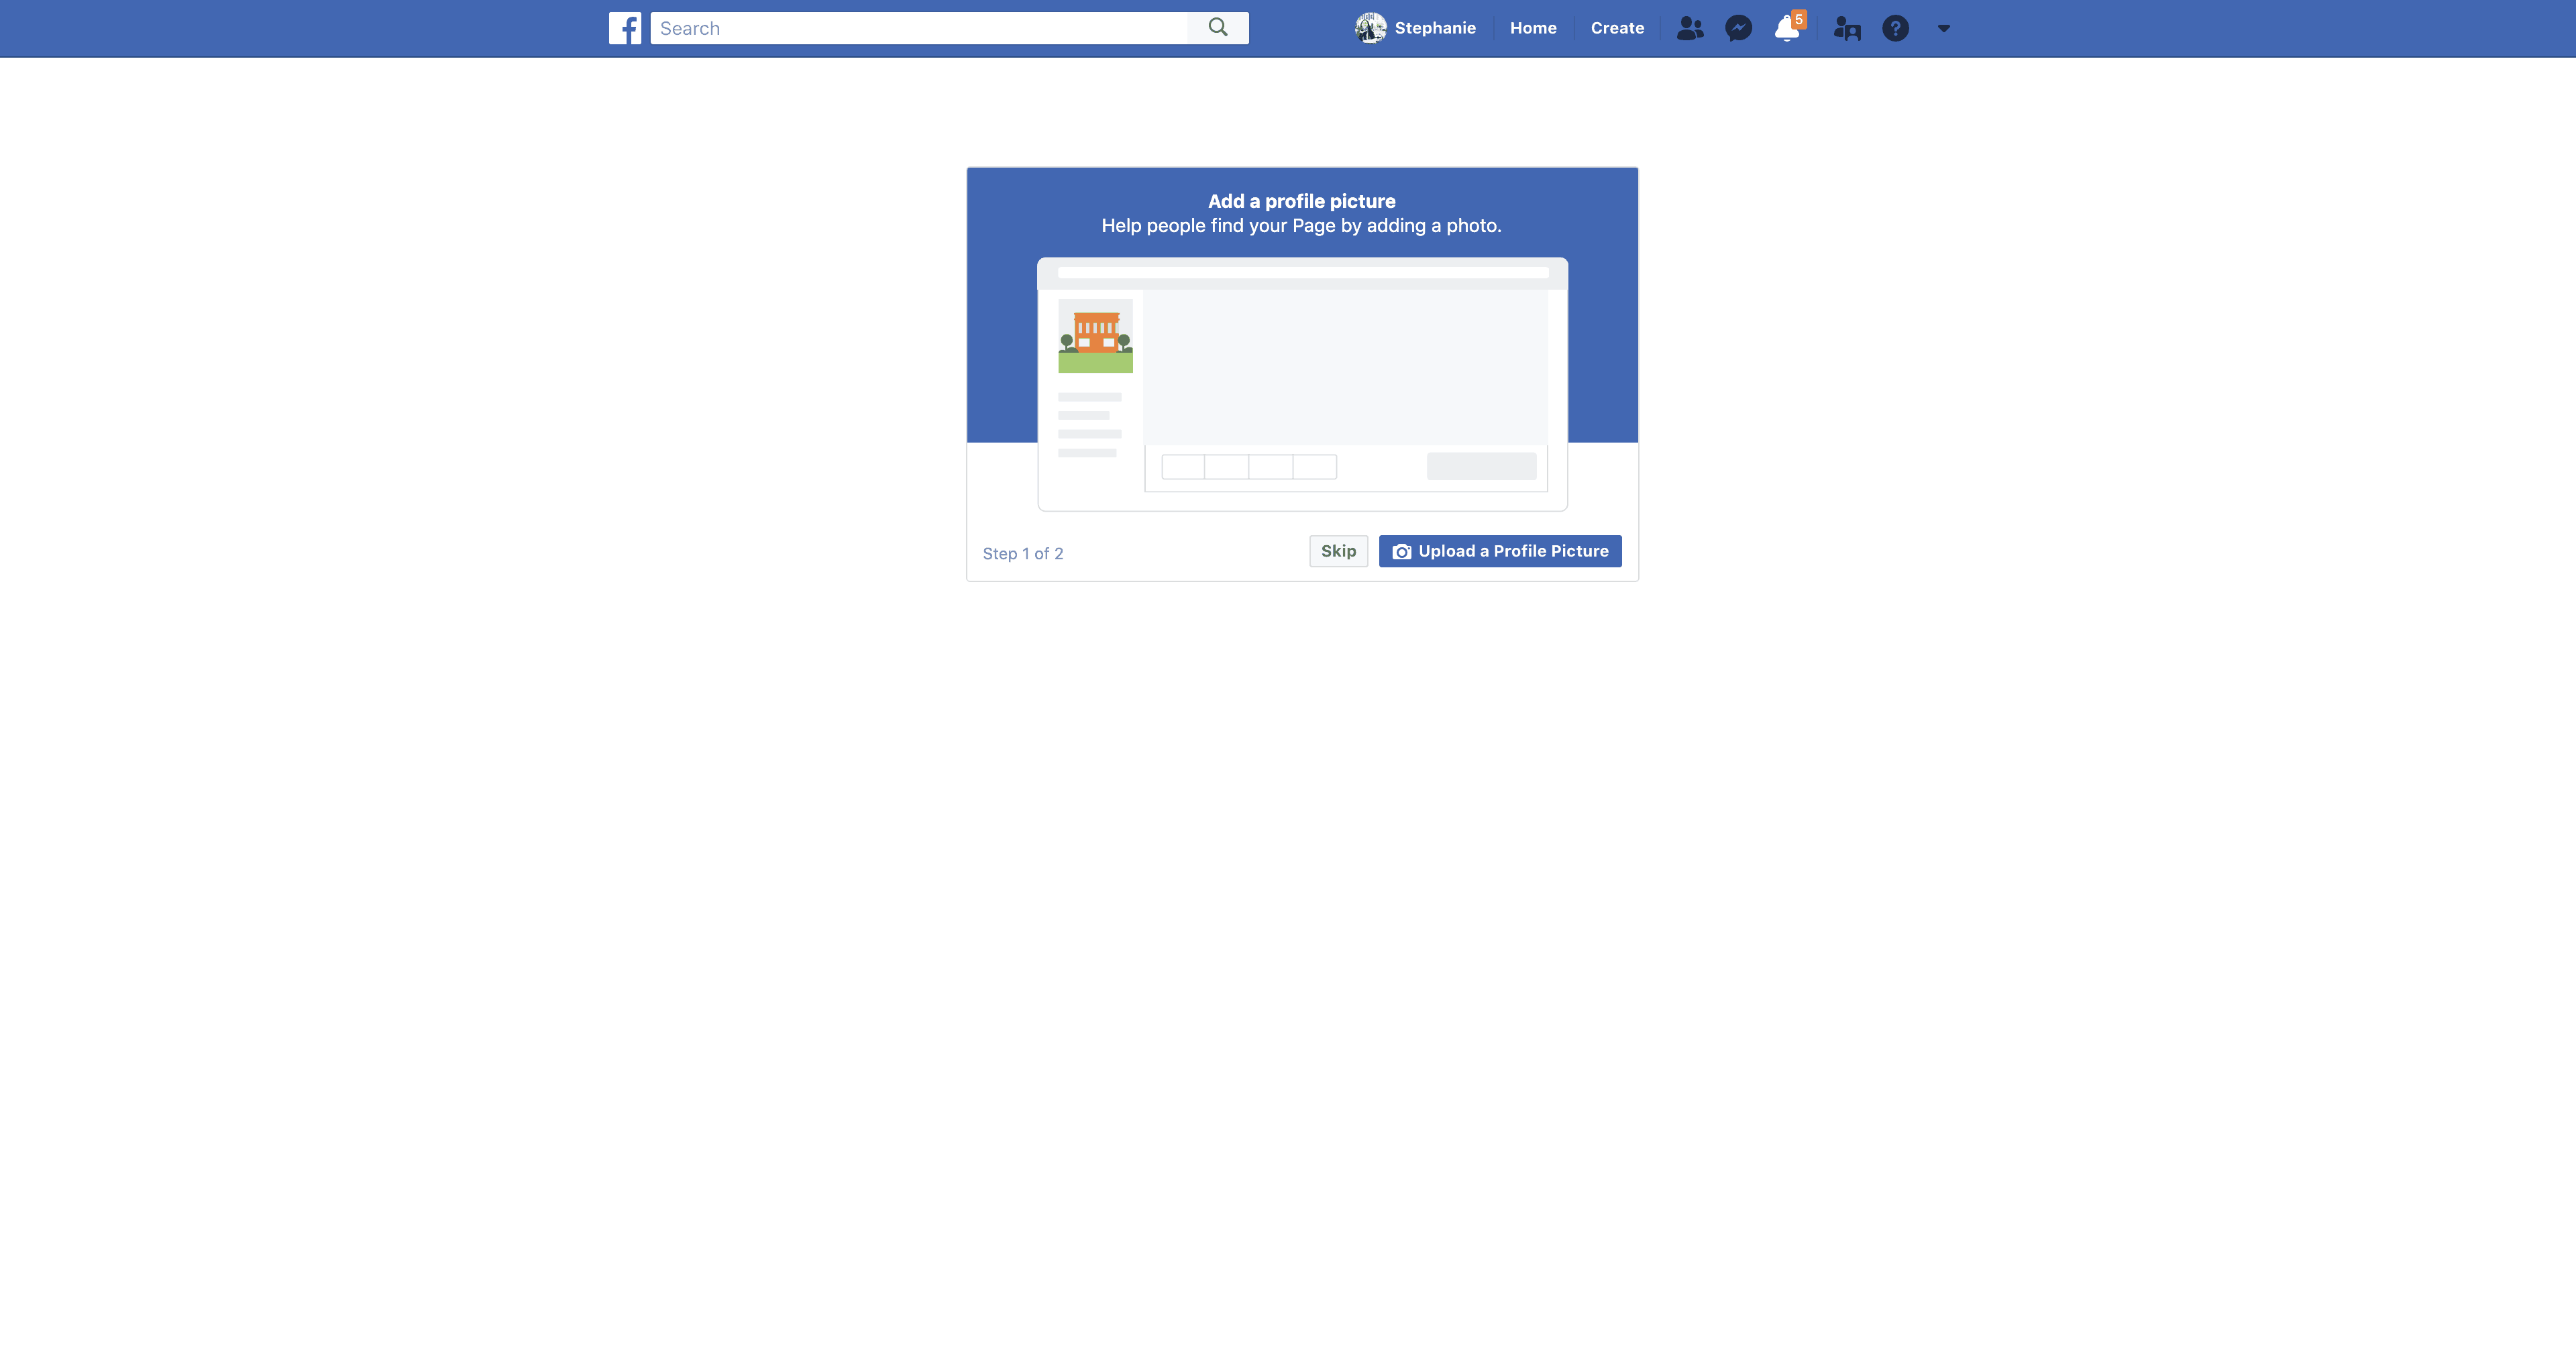 Add Profile Picture For New Page by Facebook